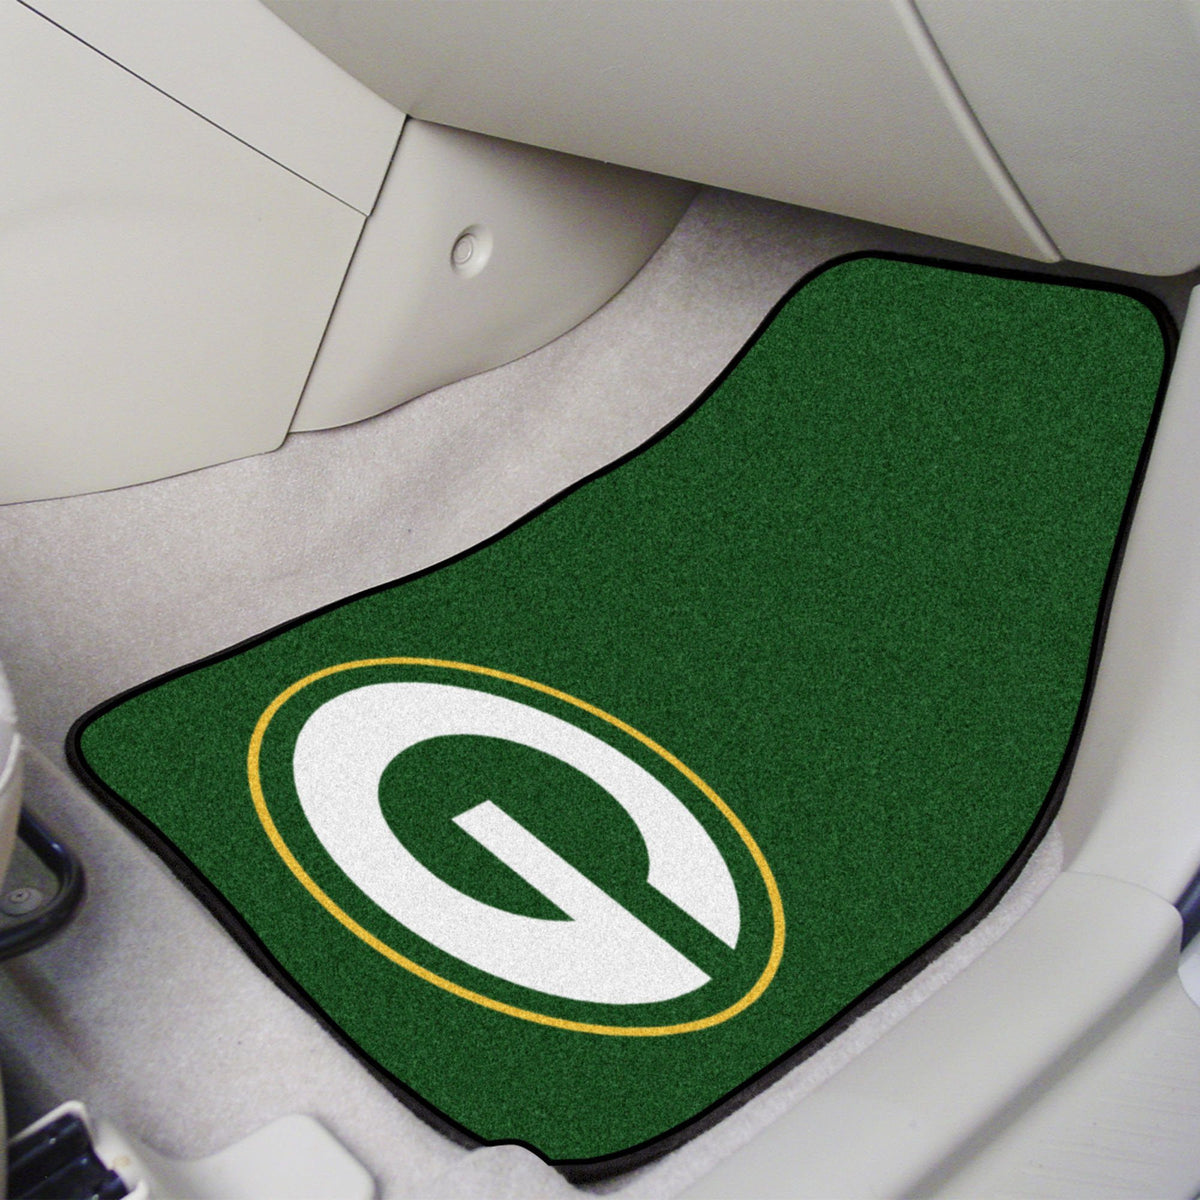 "NFL - 2-pc Carpet Car Mat Set, 17"" x 27"" NFL Mats, Front Car Mats, 2-pc Carpet Car Mat Set, NFL, Auto Fan Mats Green Bay Packers"